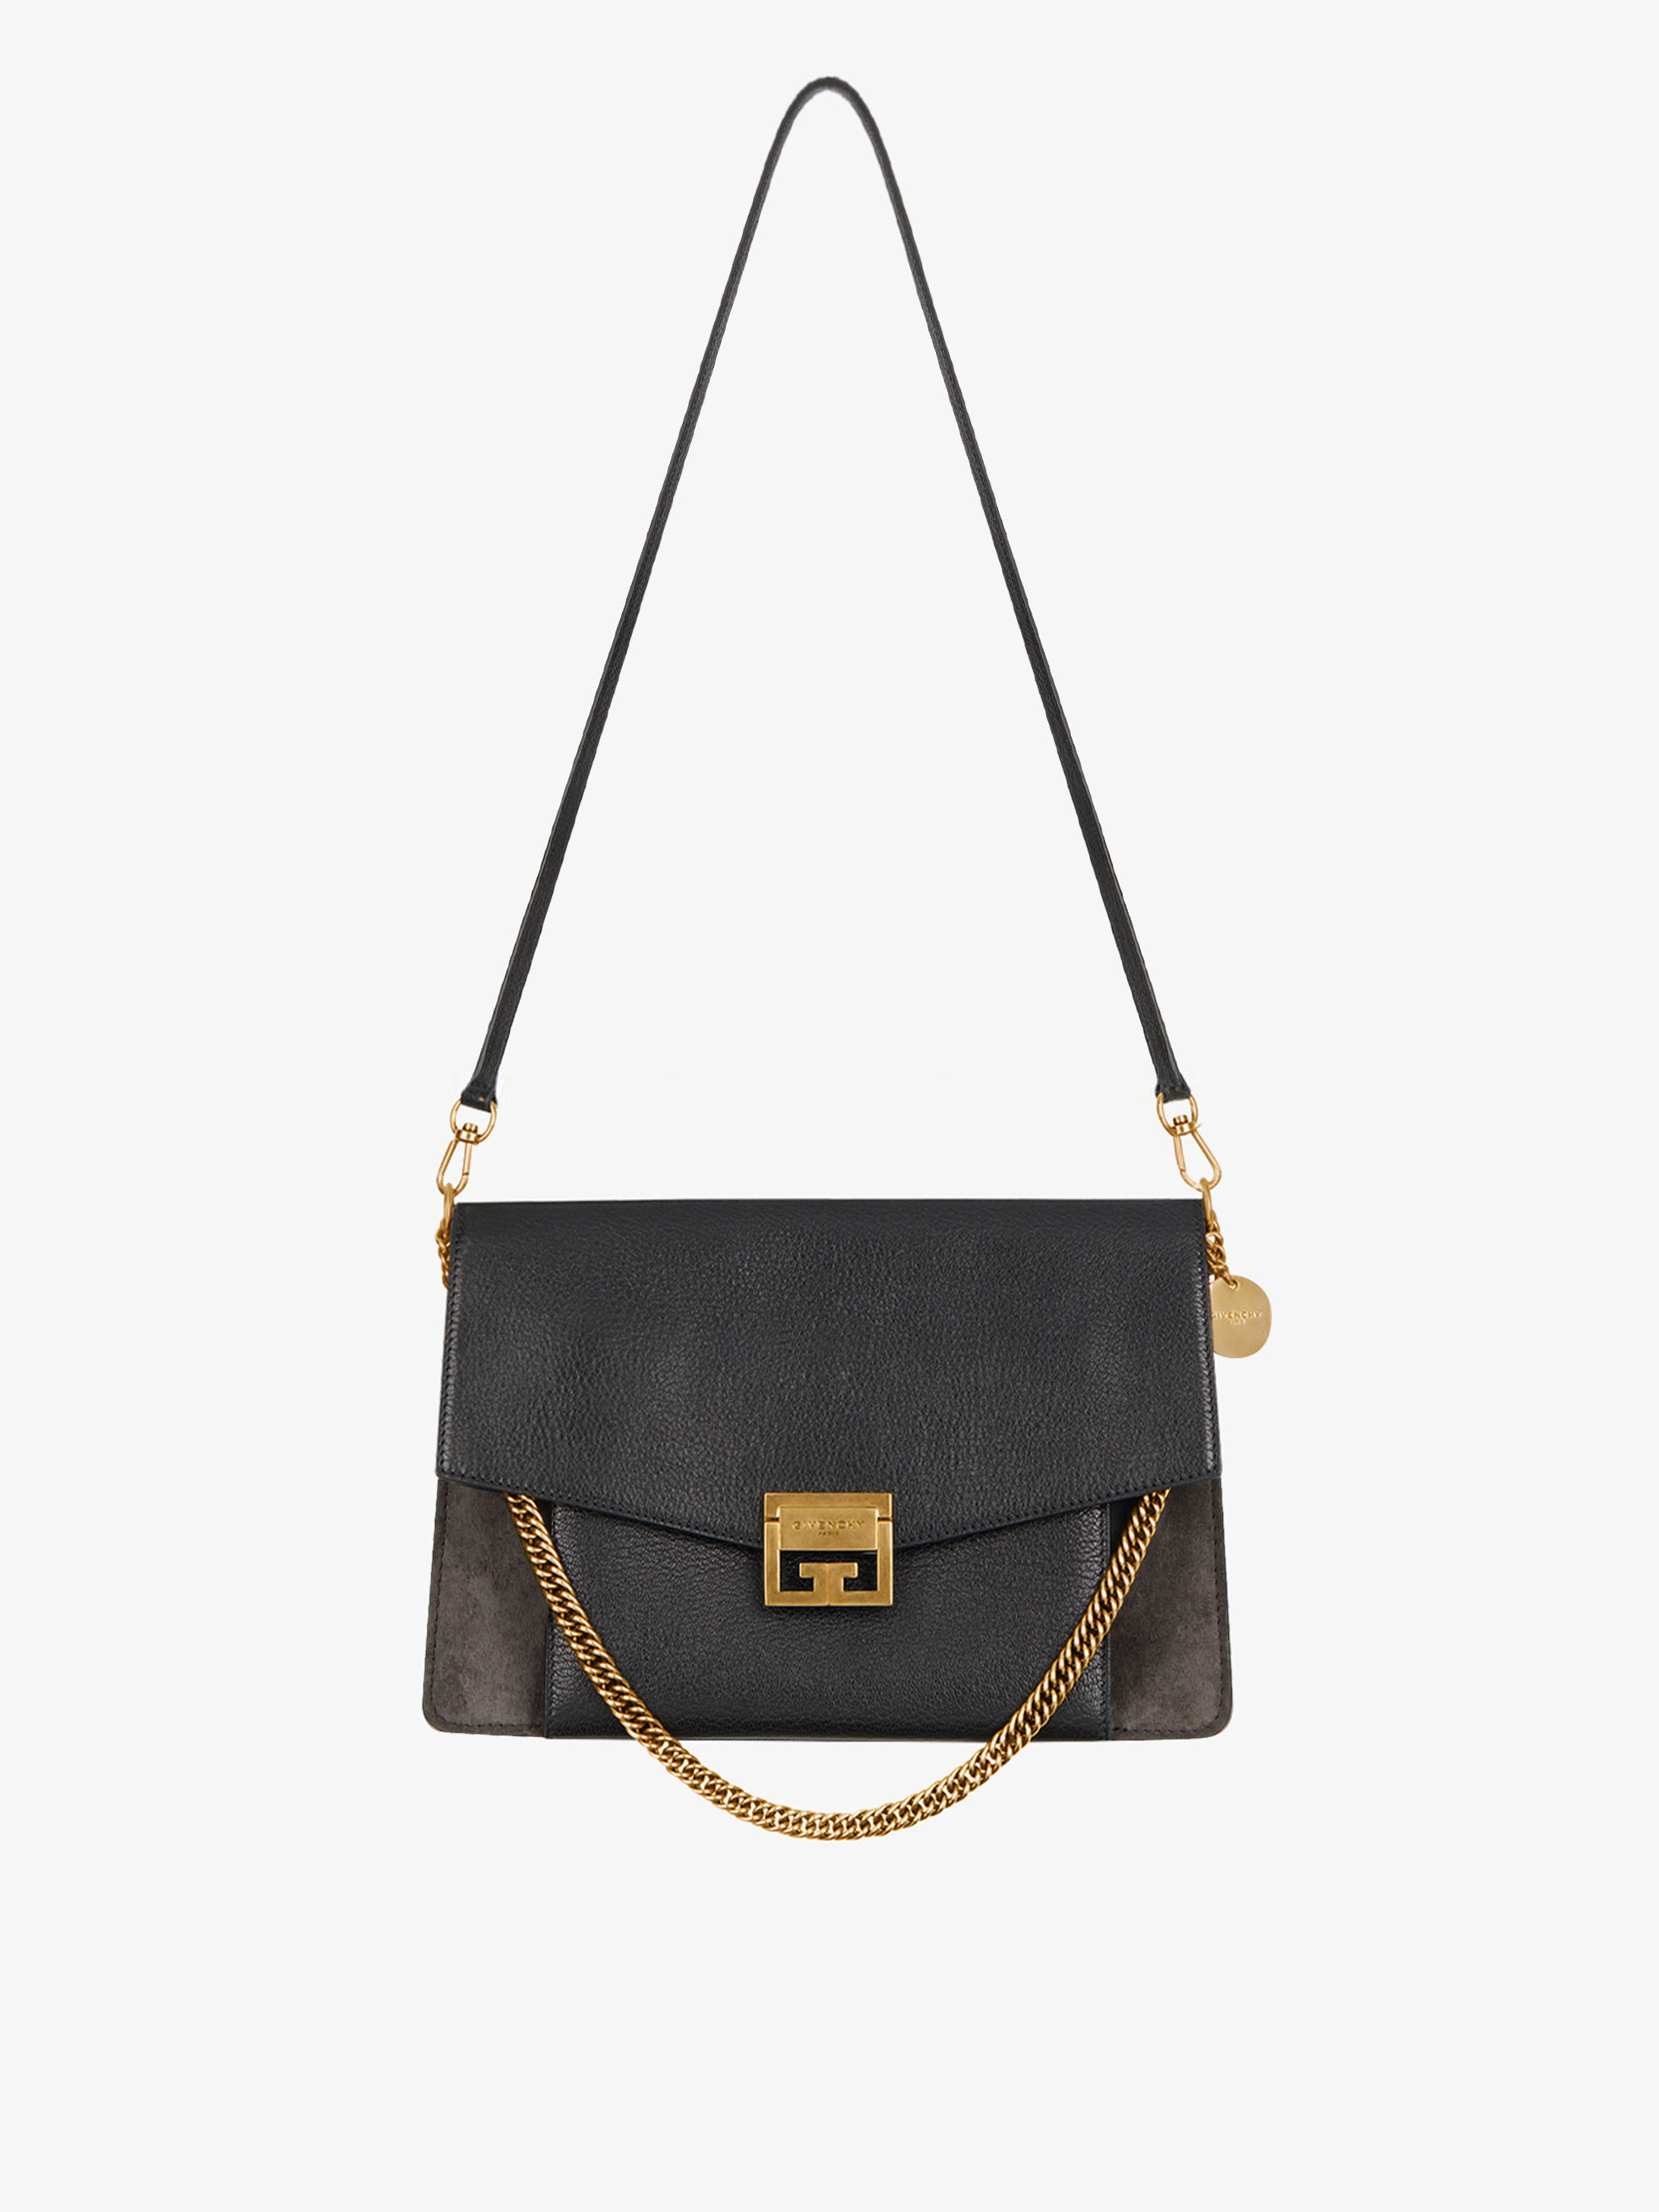 Medium GV3 bag in grained leather and suede